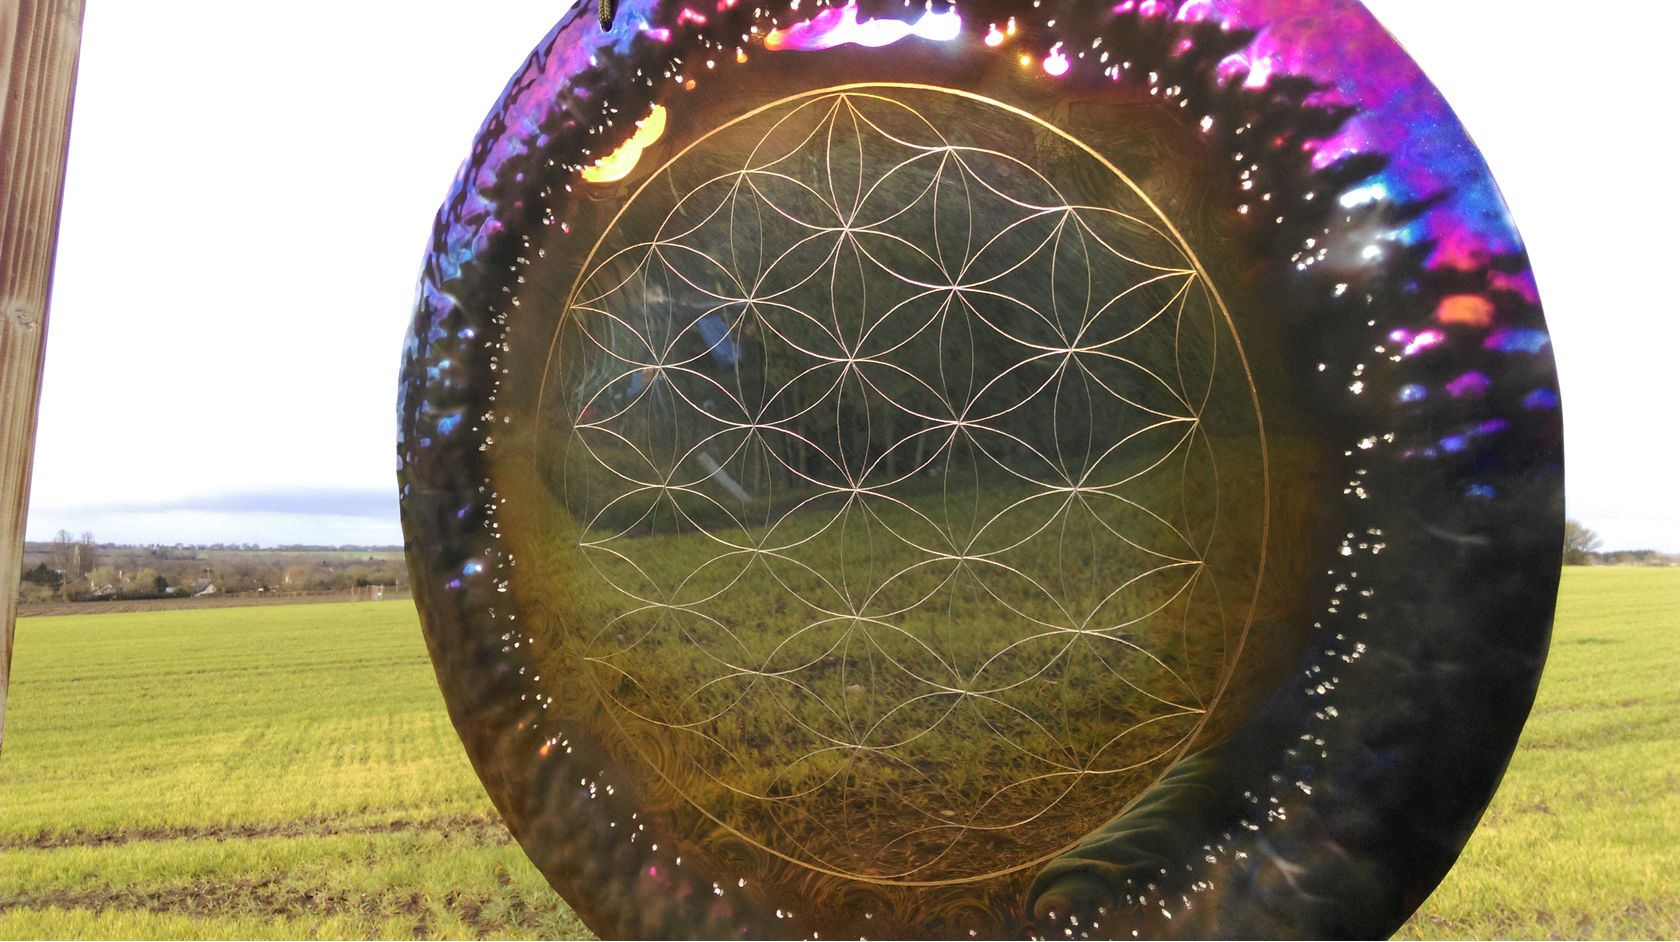 Flower of Life Detailing